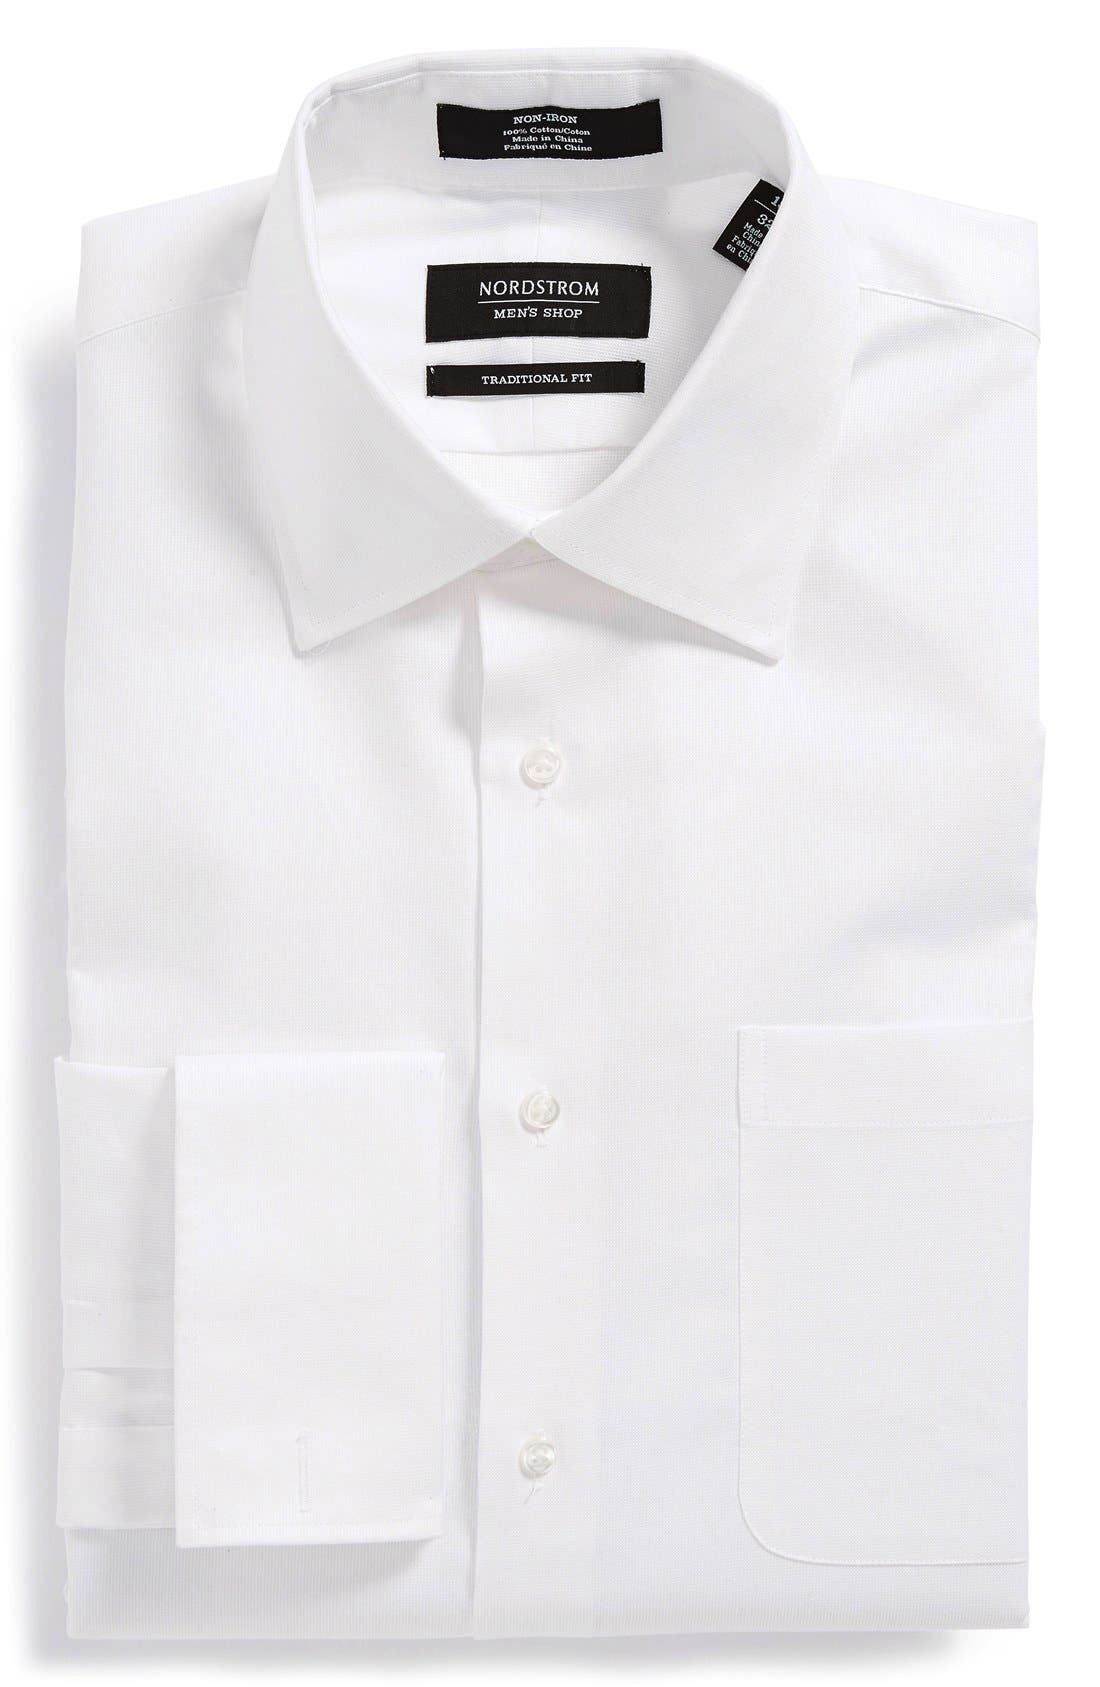 Nordstrom Traditional Fit Non-Iron Dress Shirt,                         Main,                         color, White